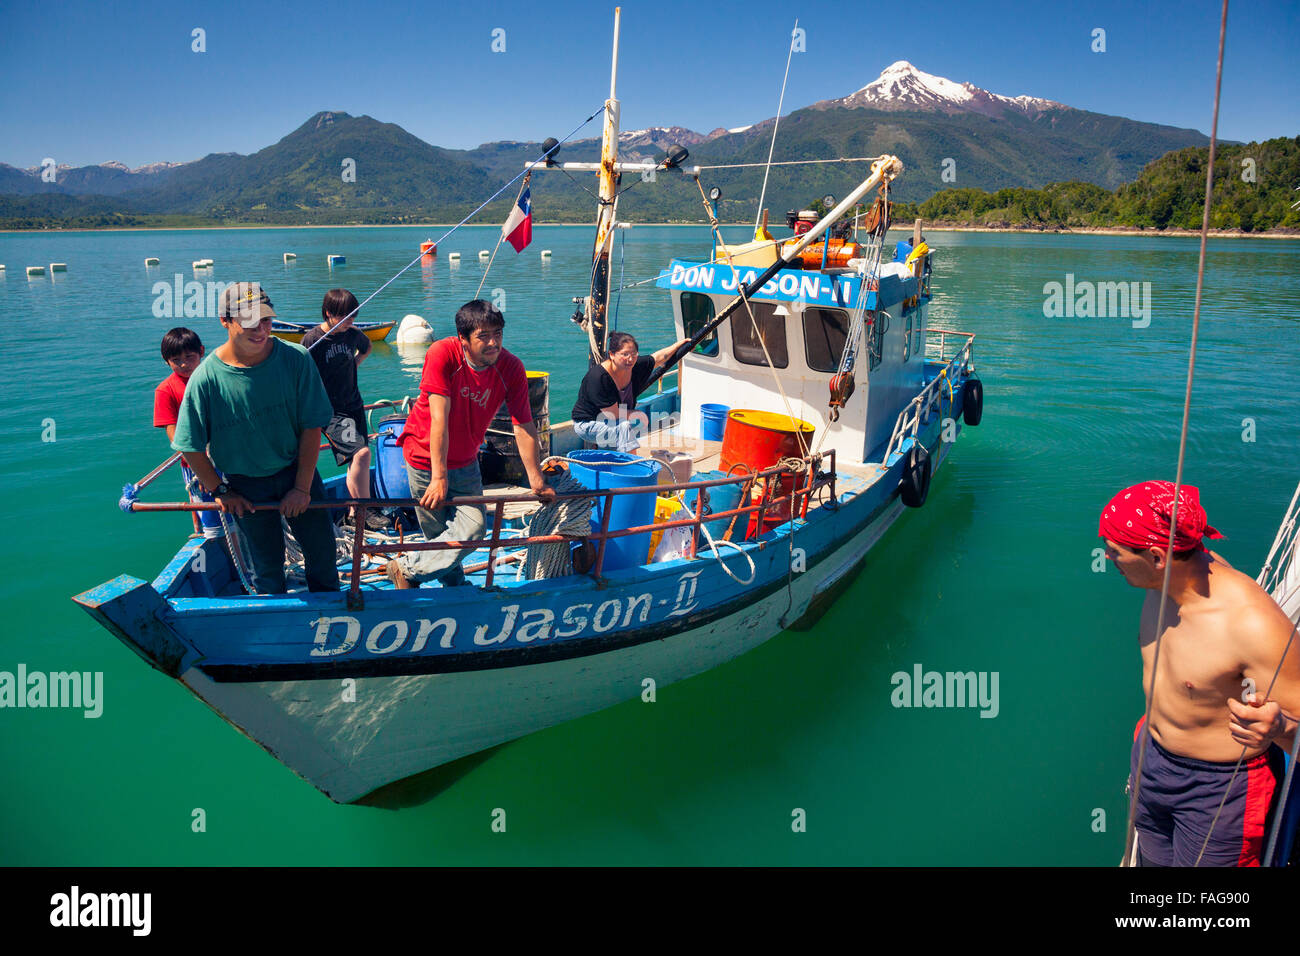 Fishing family aboard Don Jason II in Chile's Reloncaví Sound. Volcano Mt Yates rises 2111m above sea level - Stock Image